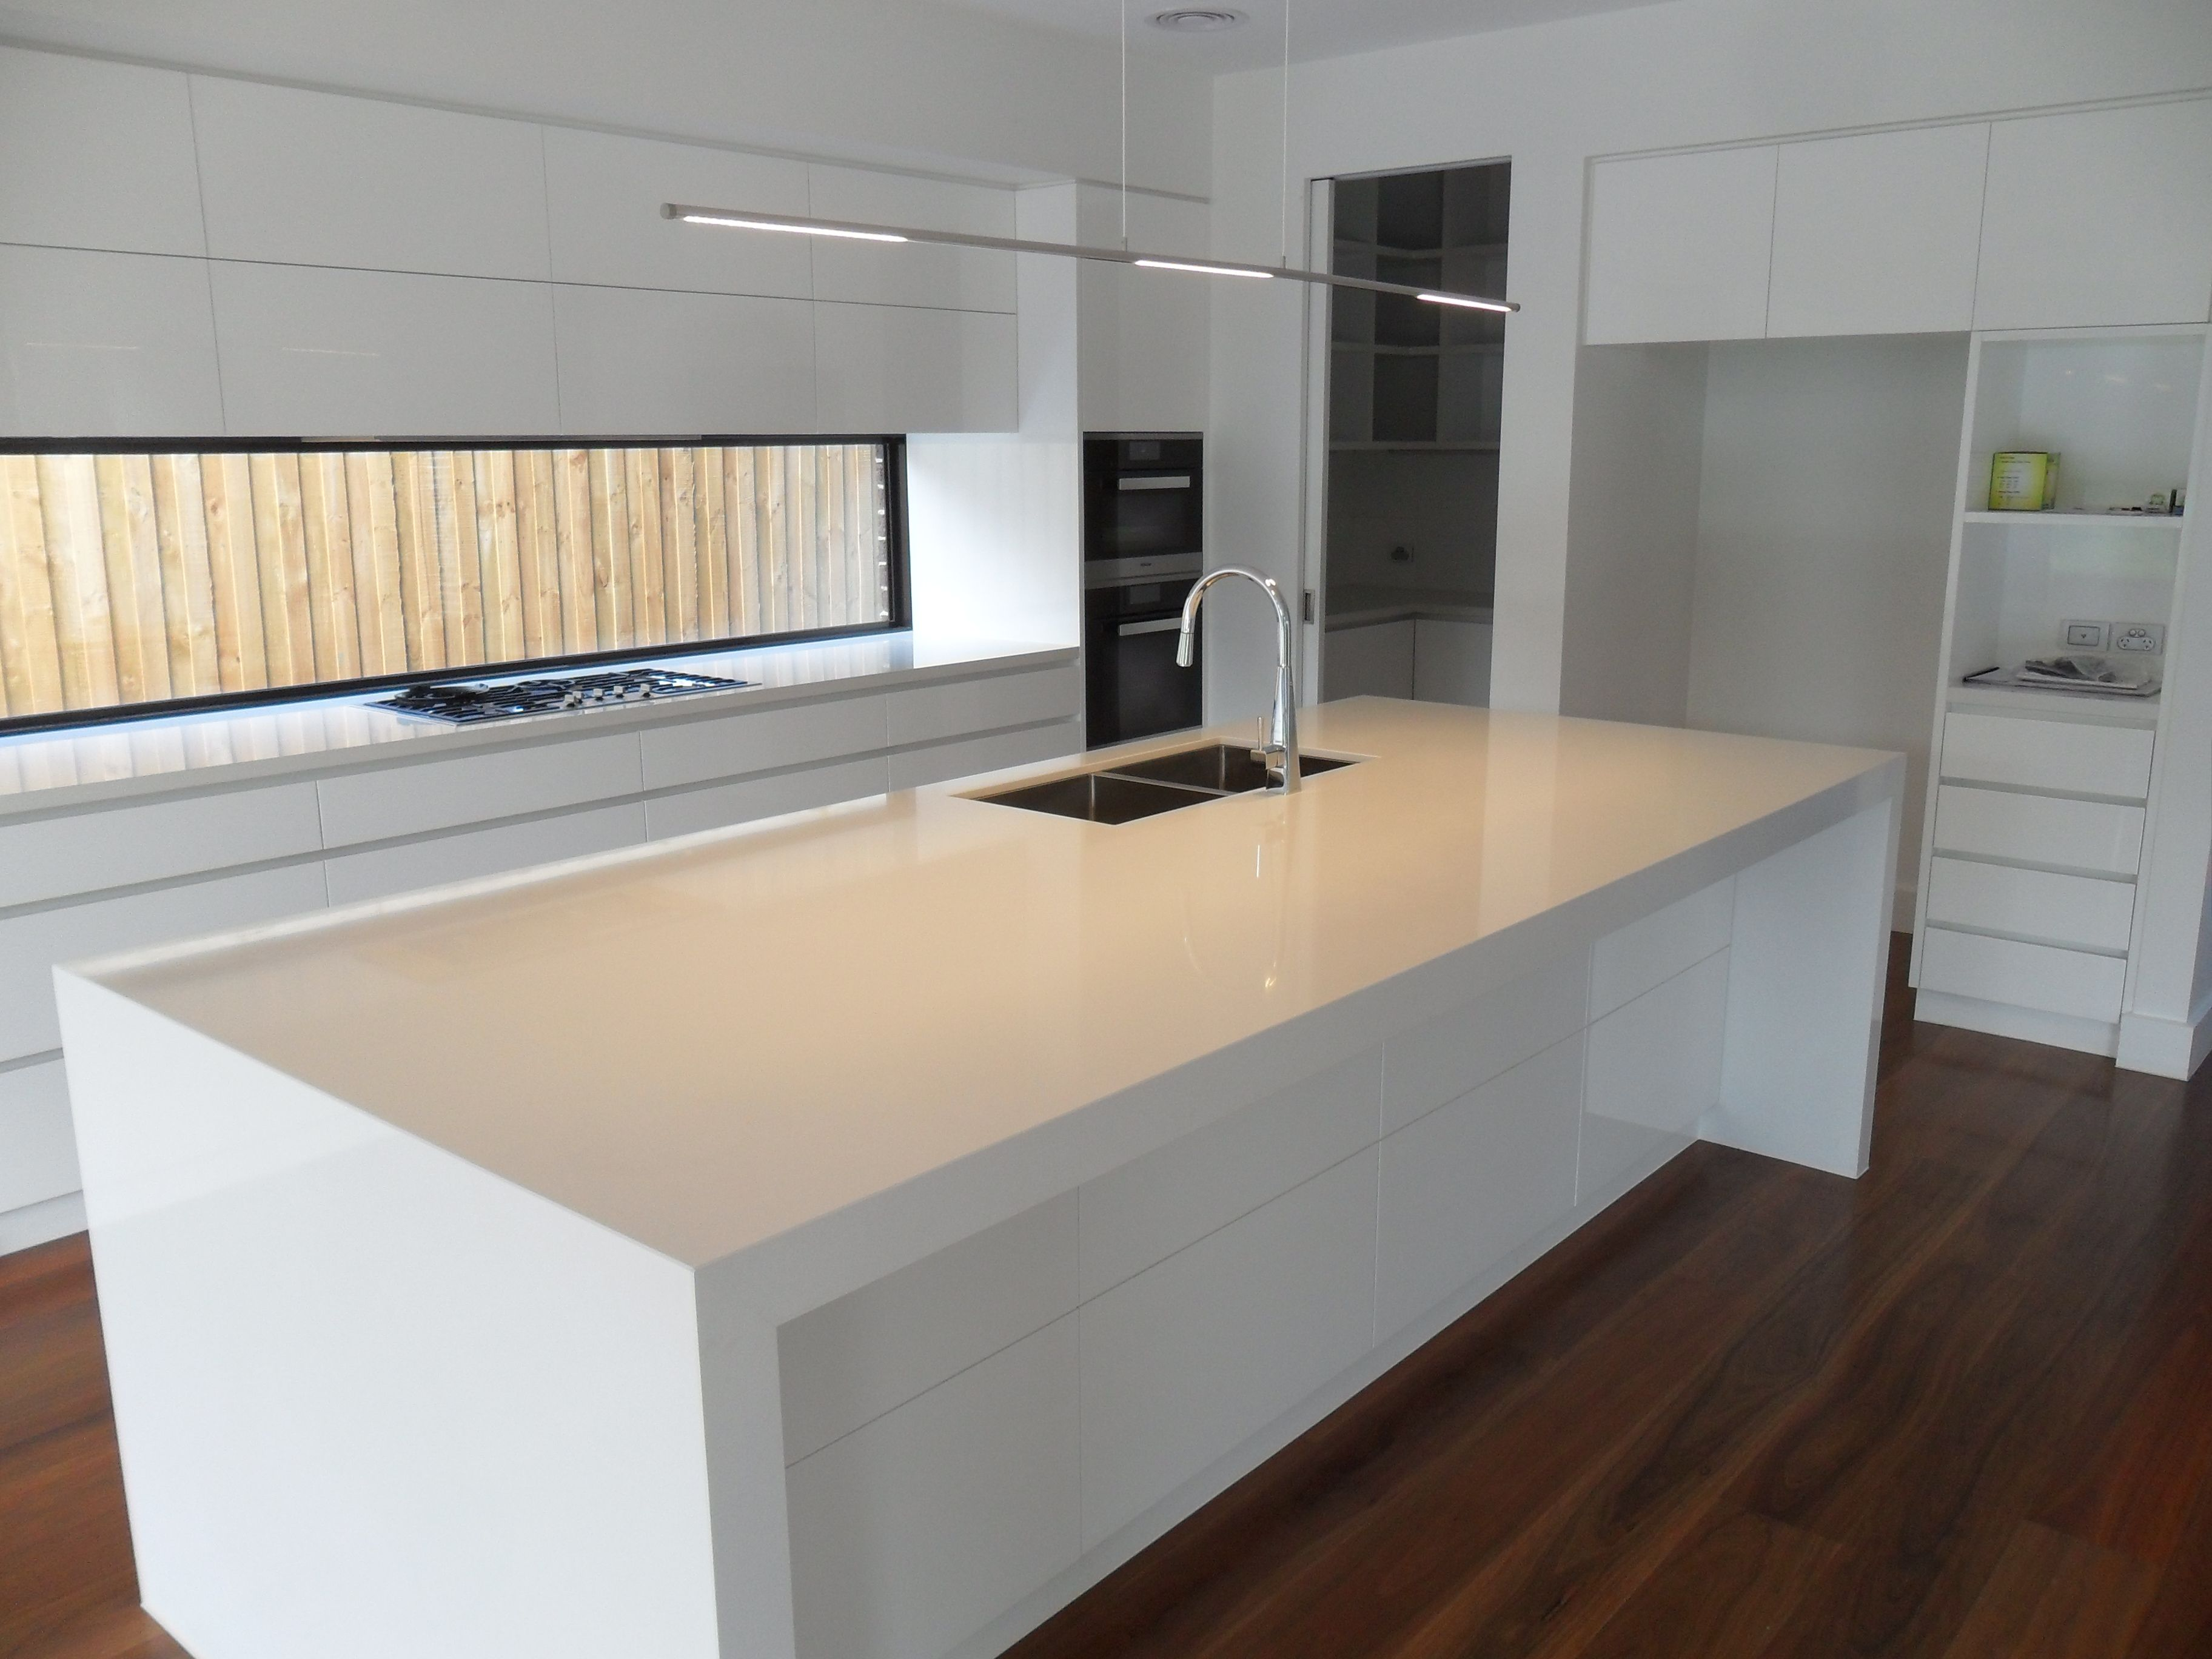 Contemporary kitchen in white. Fixed window as a splash-back, sink ...